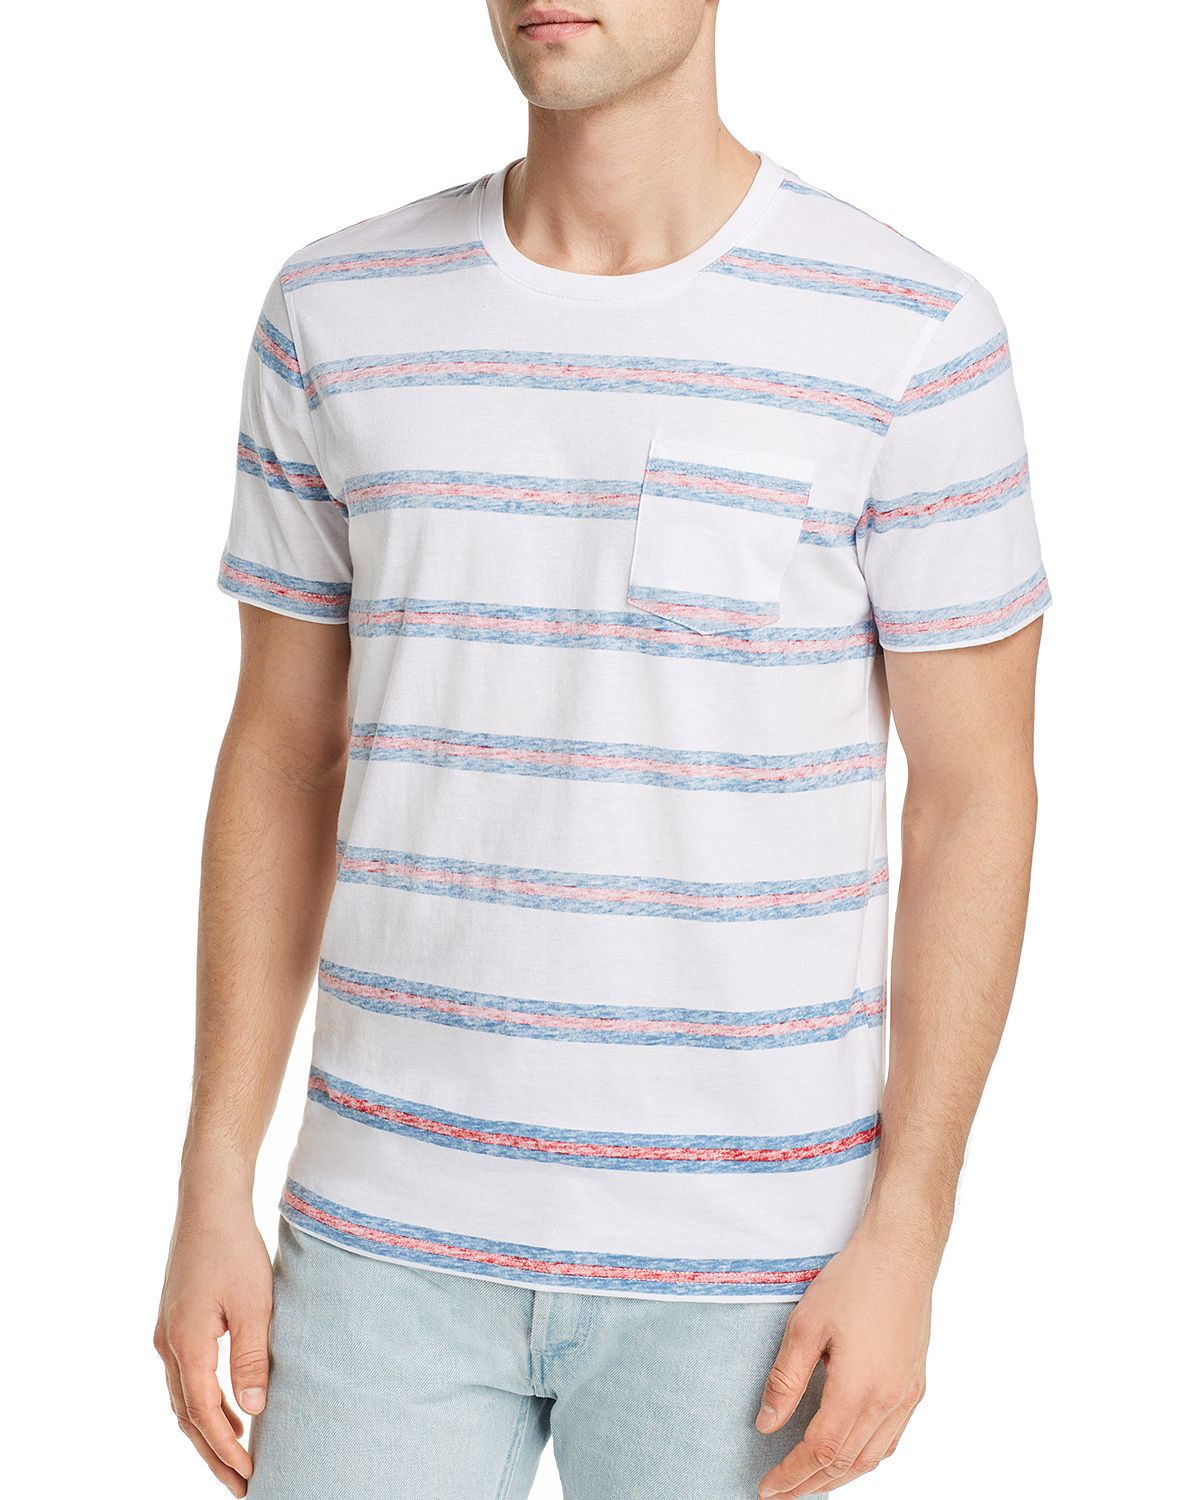 Pacific & Park Reverse-print Striped Tee